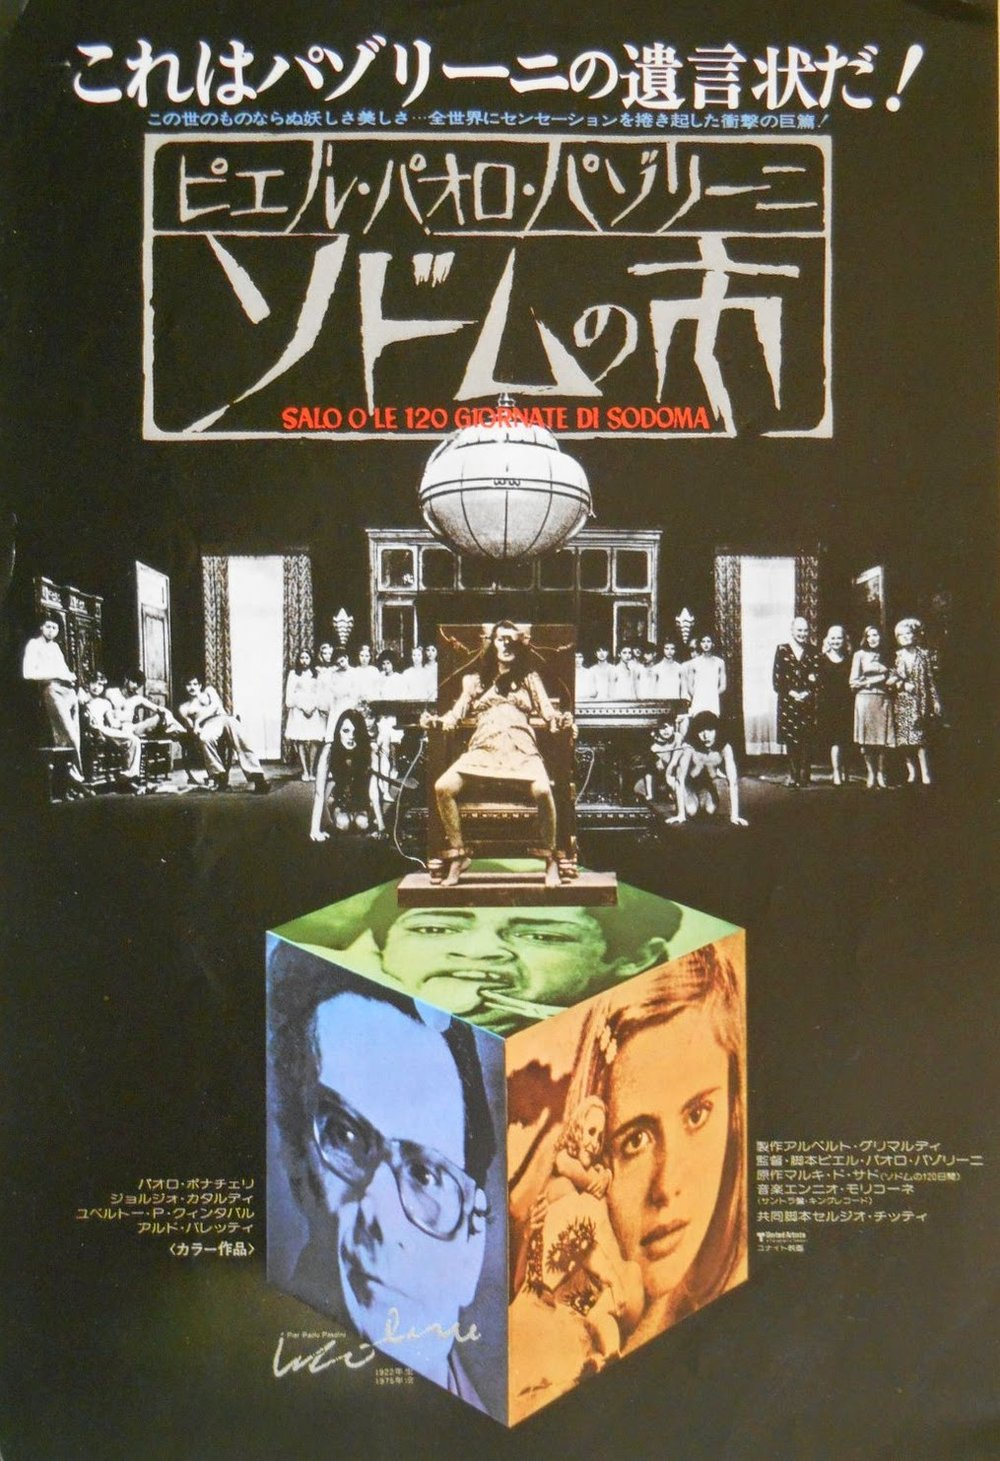 SALO, OR THE 120 DAYS OF SODOM - Japanese Poster 2.jpg